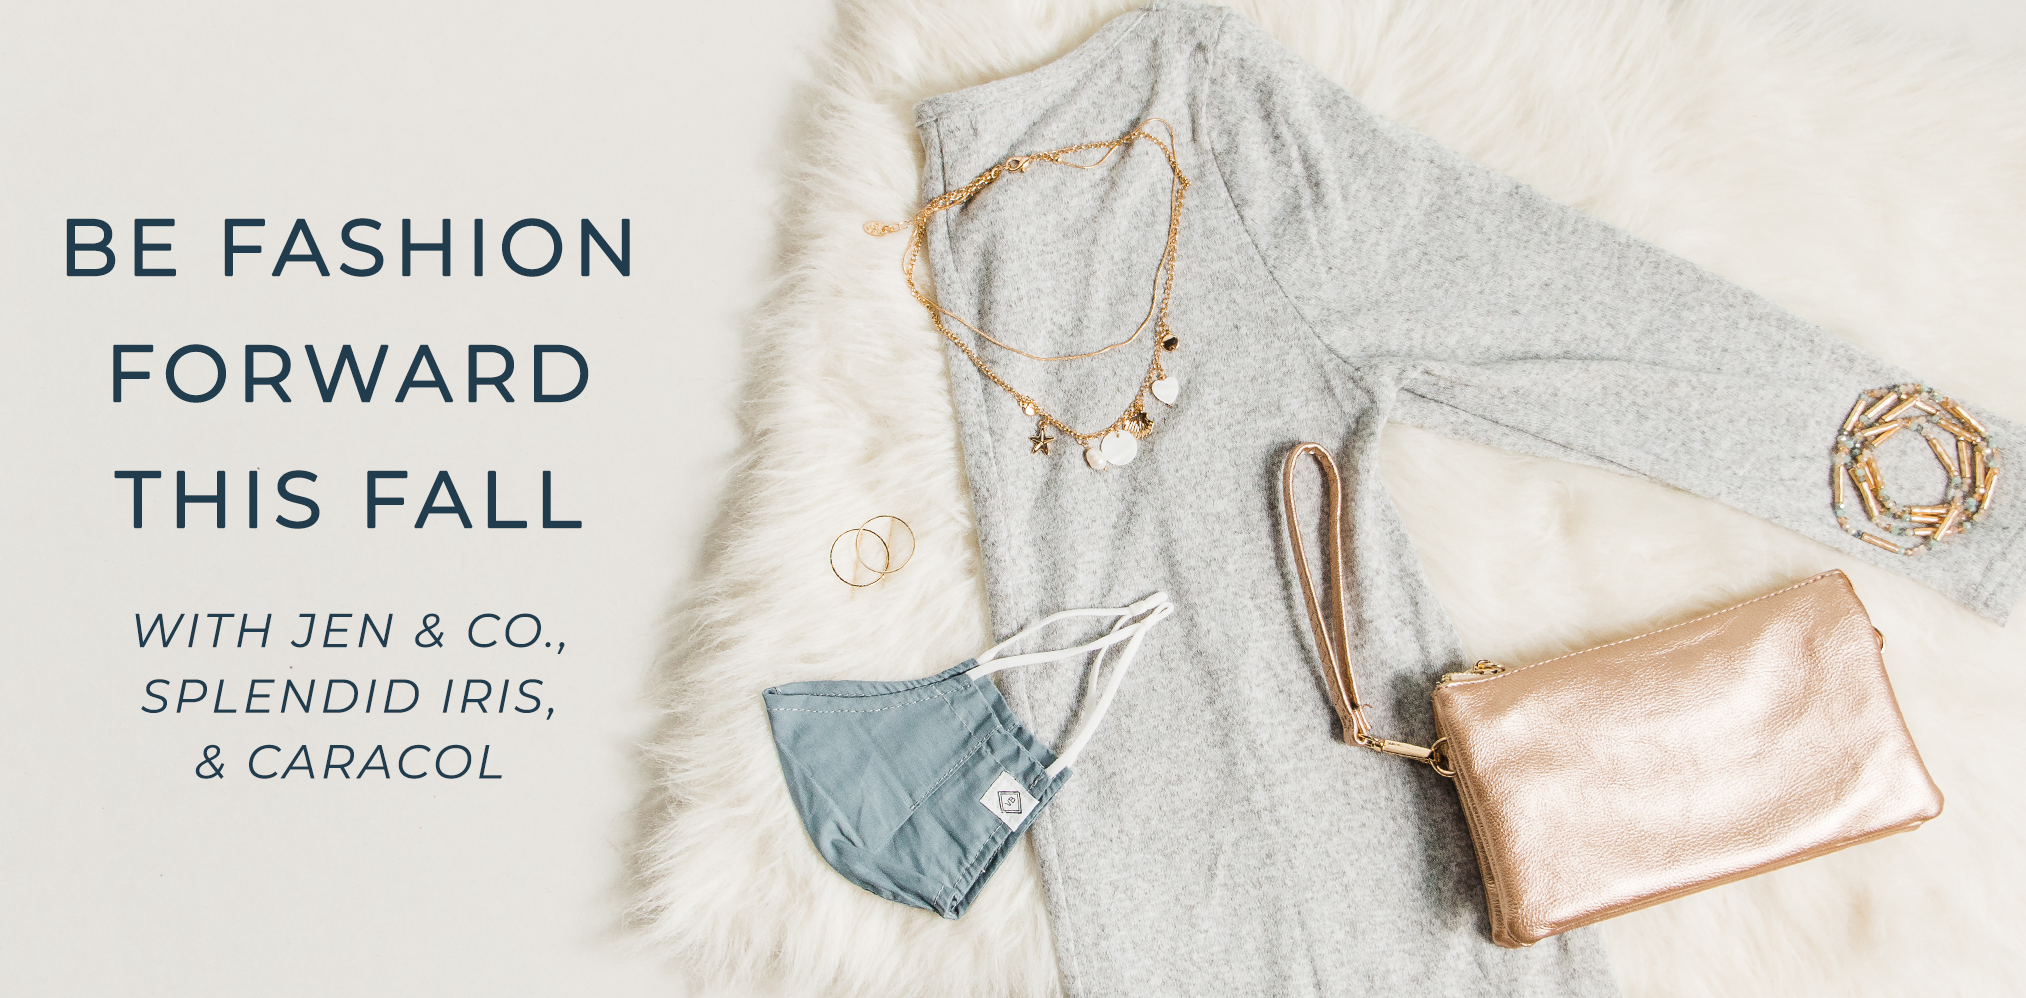 Be Fashion Forward this Fall with Jen and Co - Splendid Iris - and Caracol